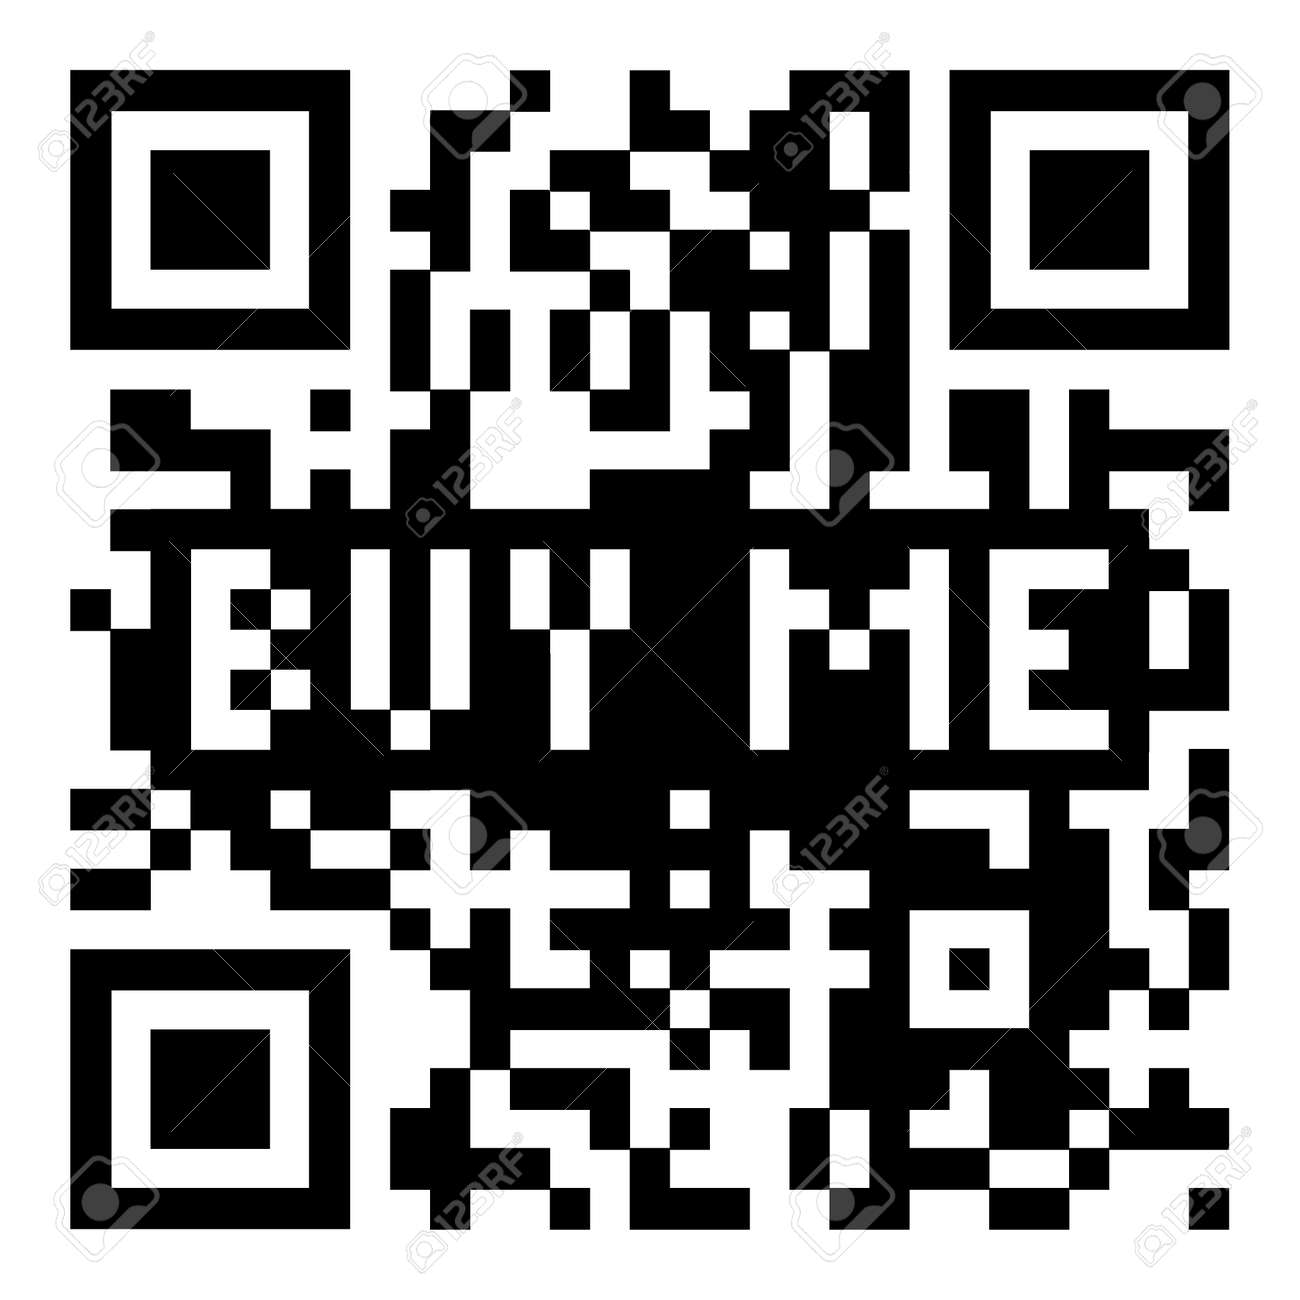 Simple modern qr code with buy me for shopping icon Stock Photo - 13348148